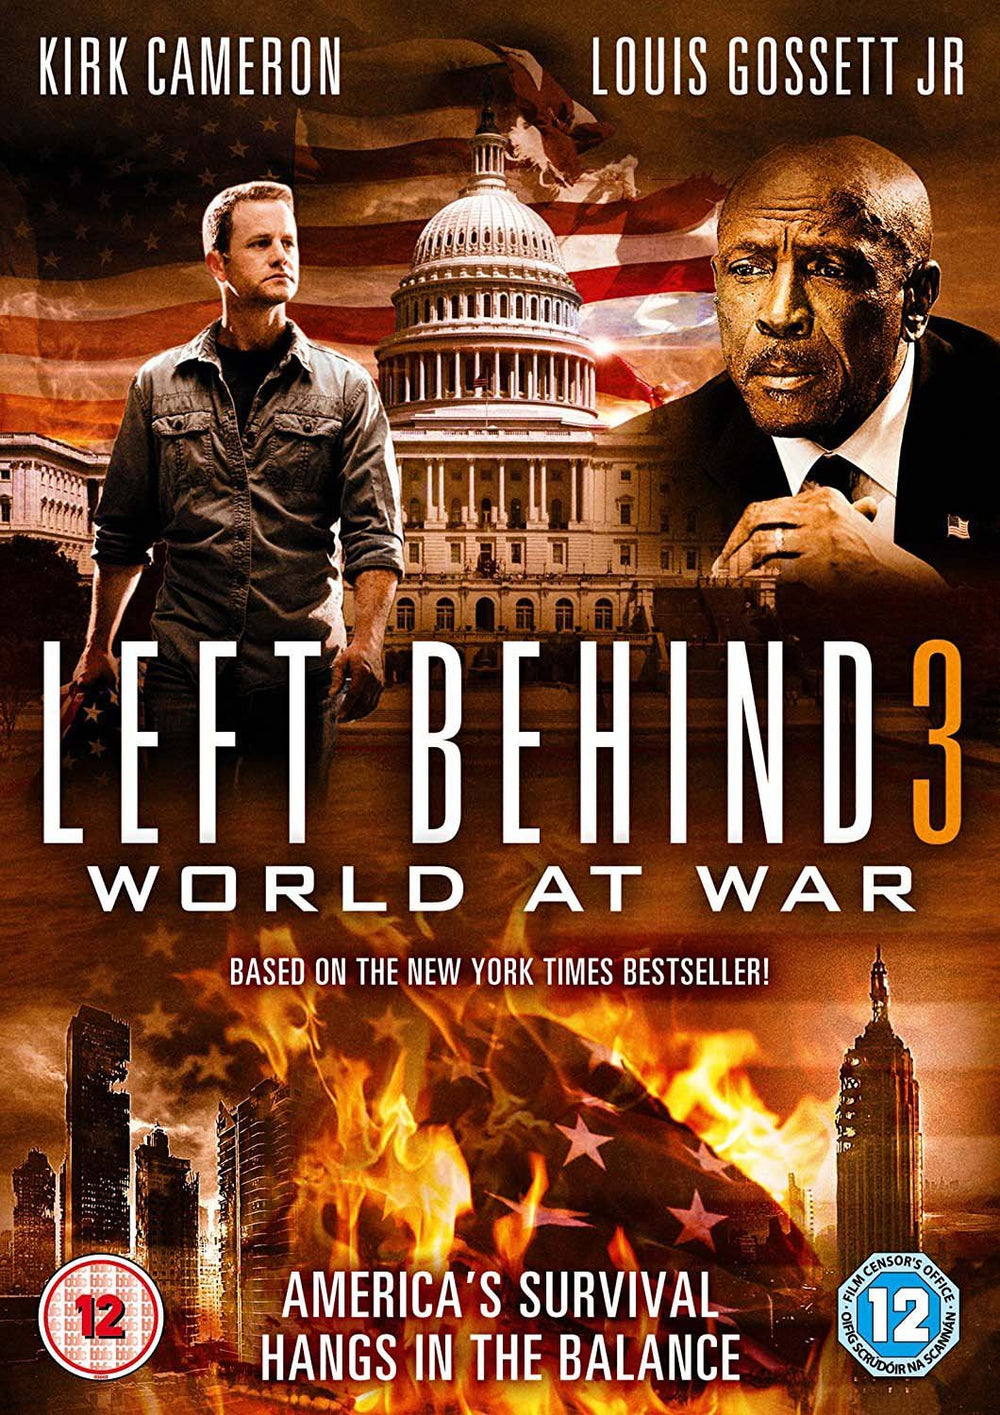 Left behind 3 (DVD)